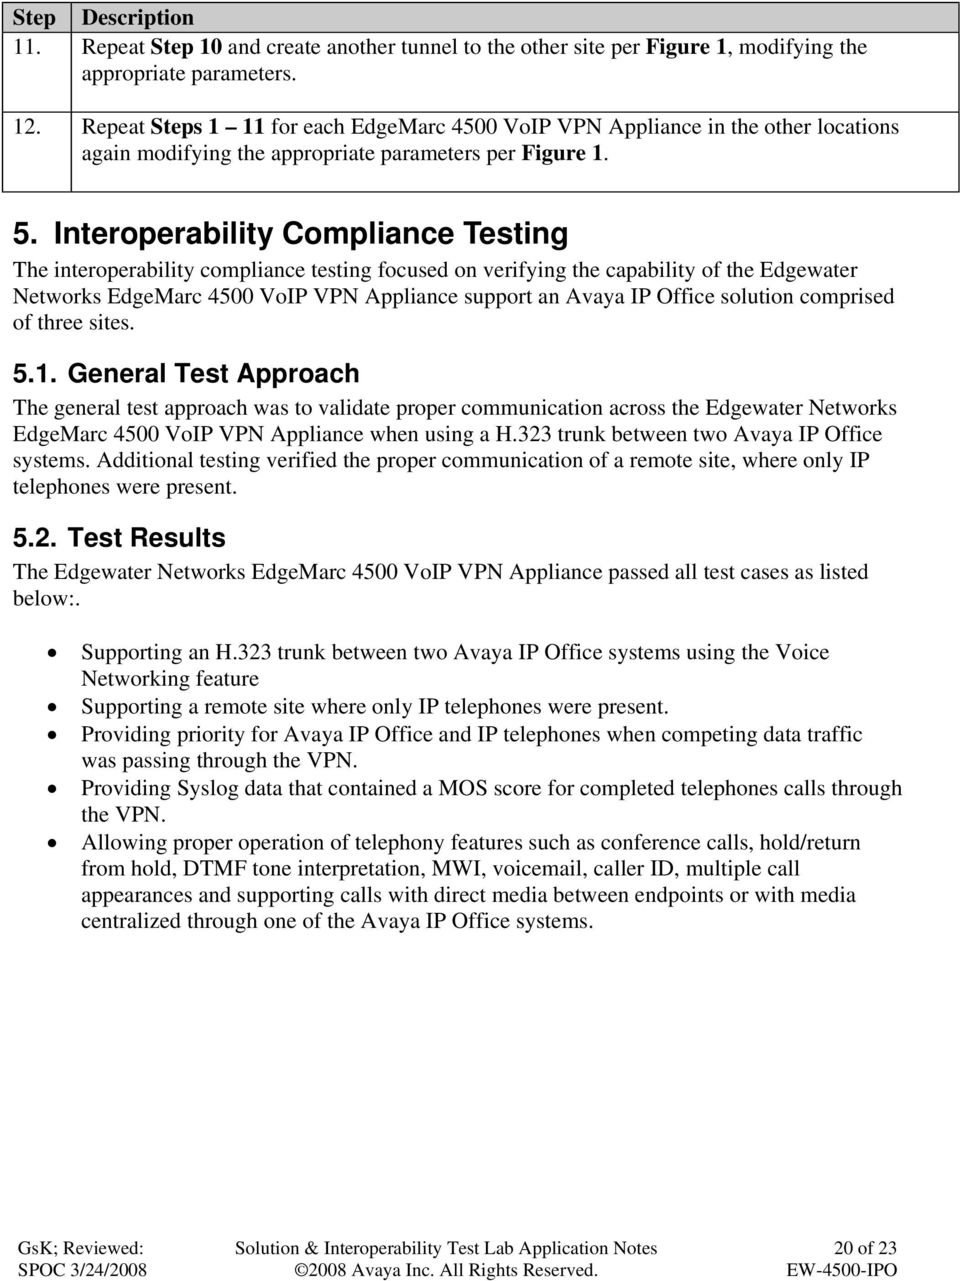 Interoperability Compliance Testing The interoperability compliance testing focused on verifying the capability of the Edgewater Networks EdgeMarc 4500 VoIP VPN Appliance support an Avaya IP Office